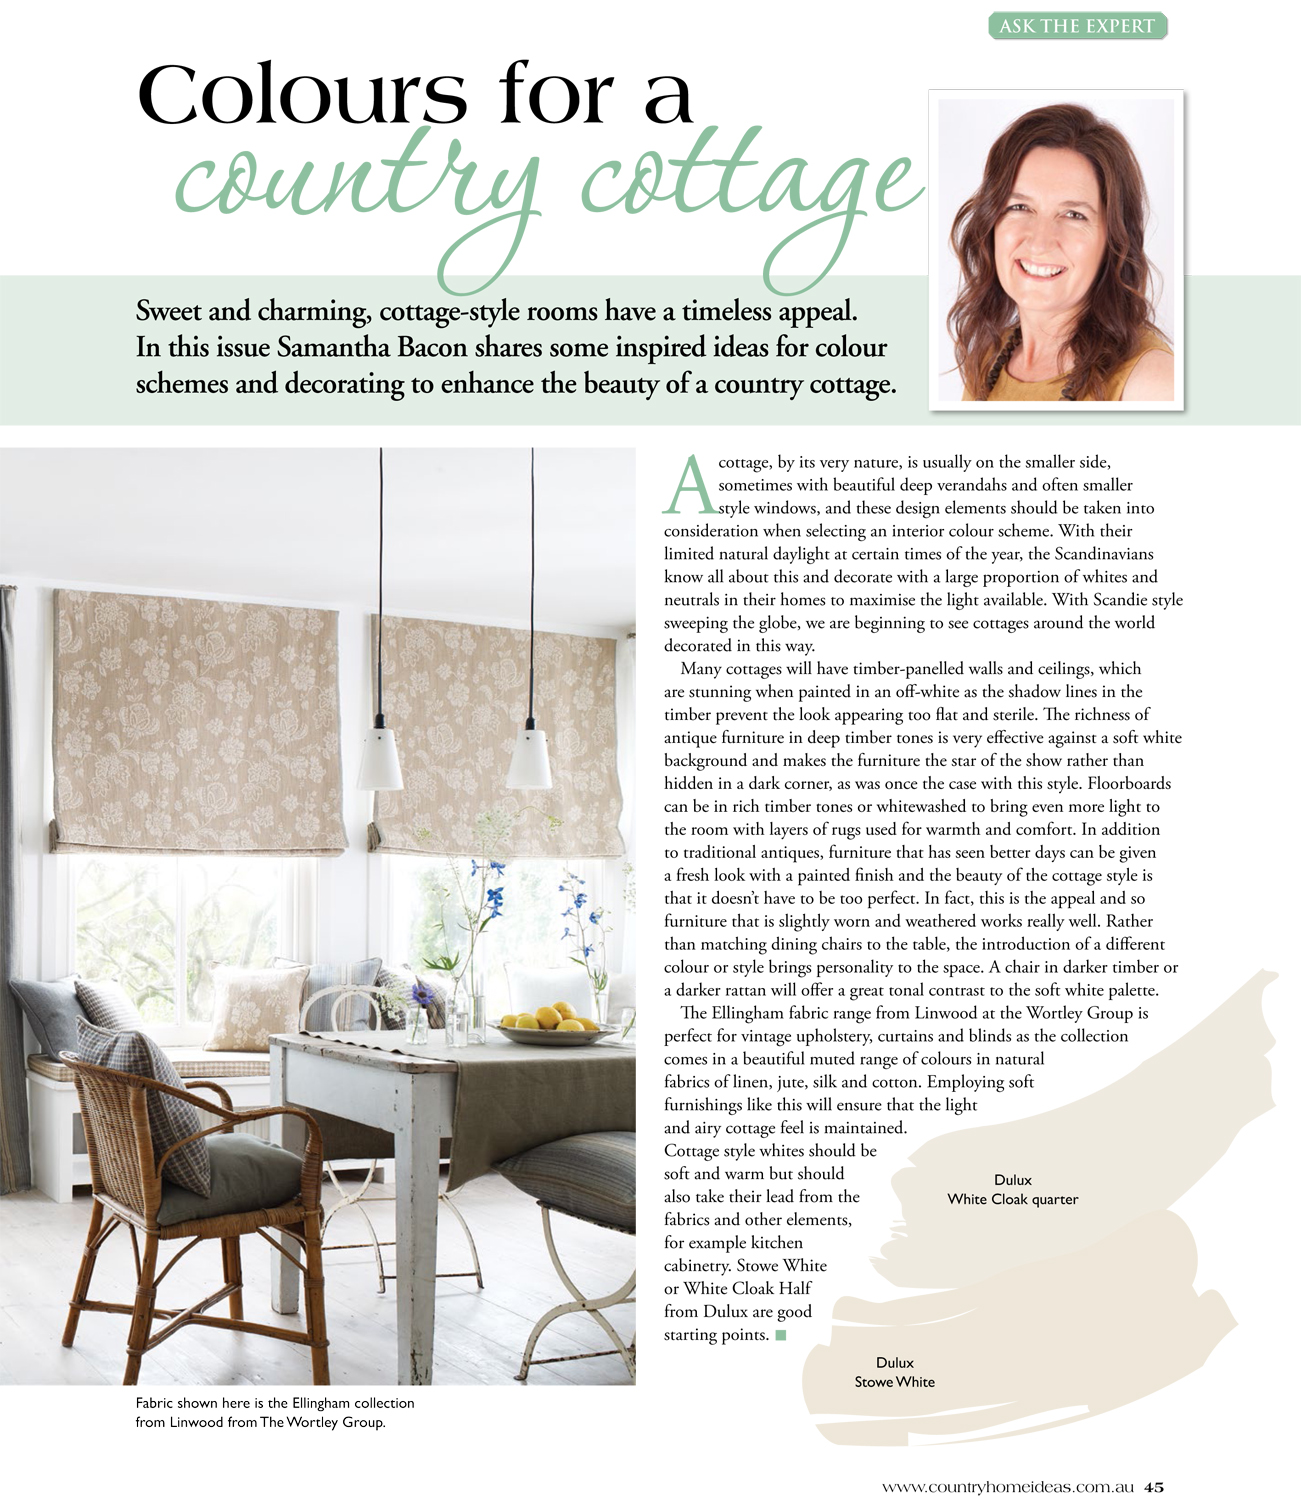 Colours for a Country Cottage